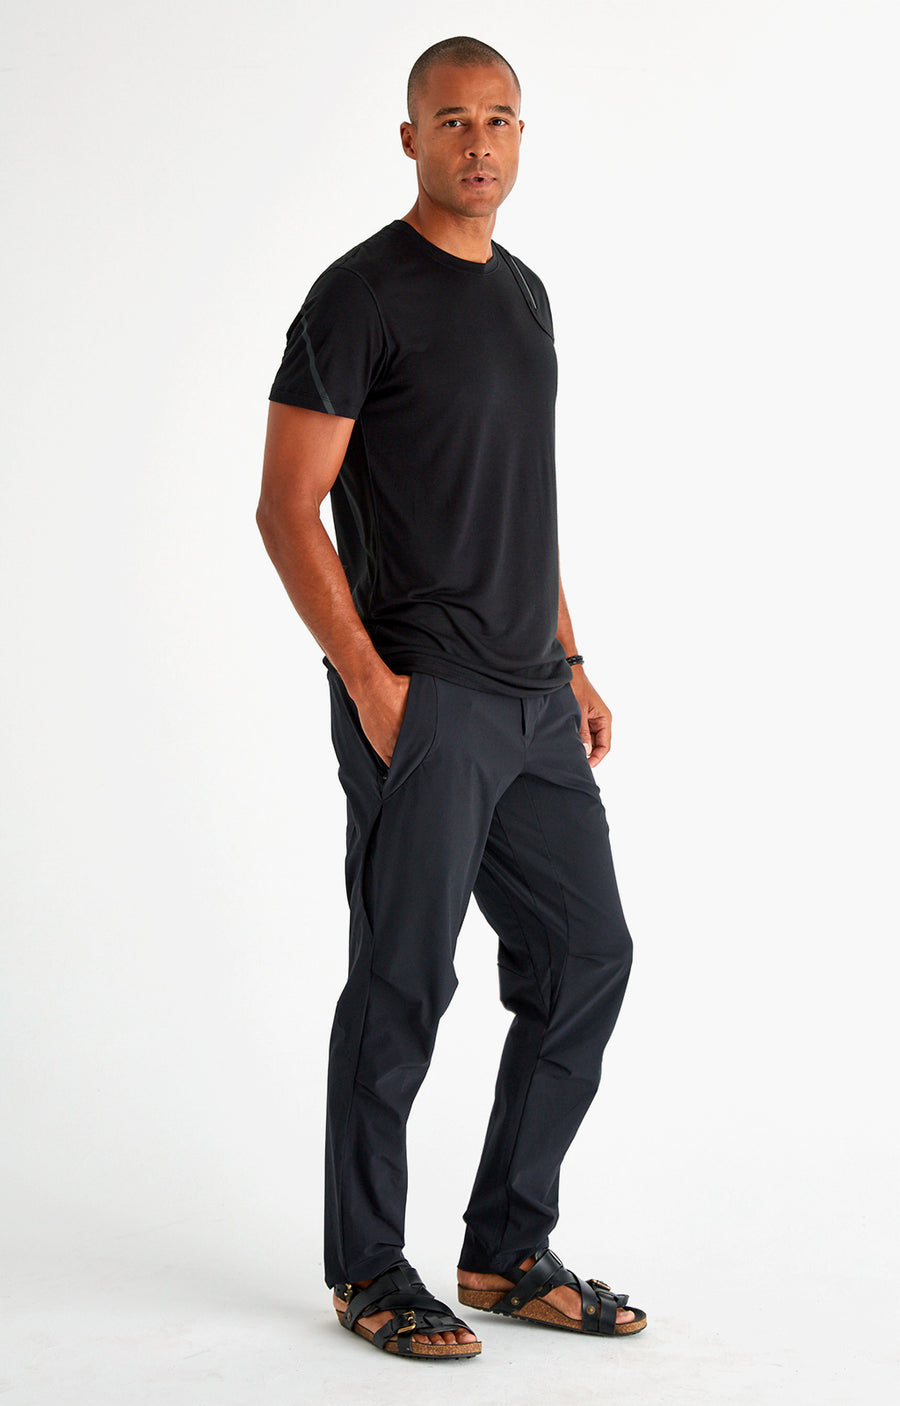 Exceed - Merino Silk Zipper Pocket Short Sleeve in Black